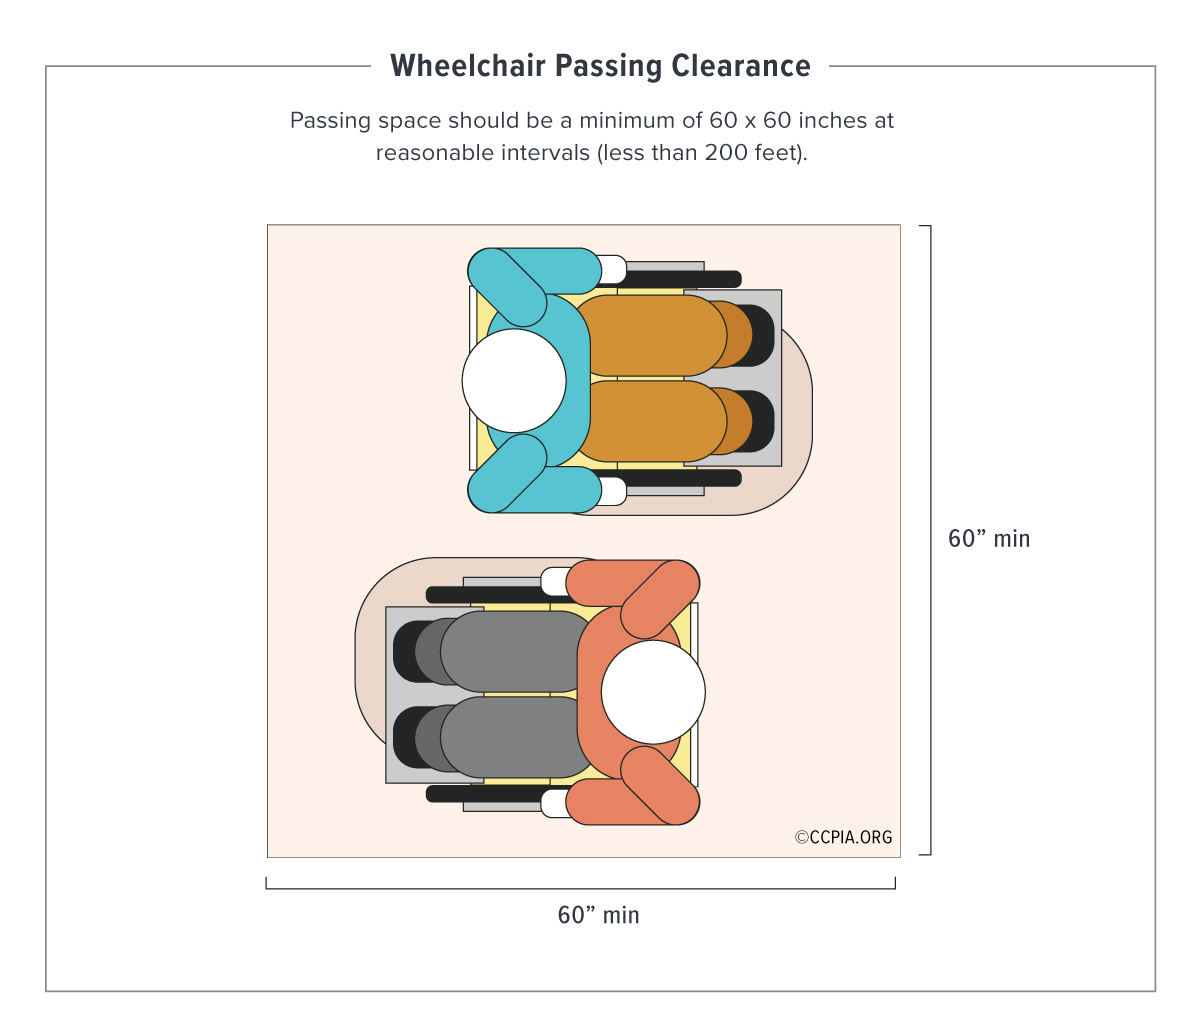 Wheelchair passing dimensions, accessibility in public accommodations and commercial facilities.